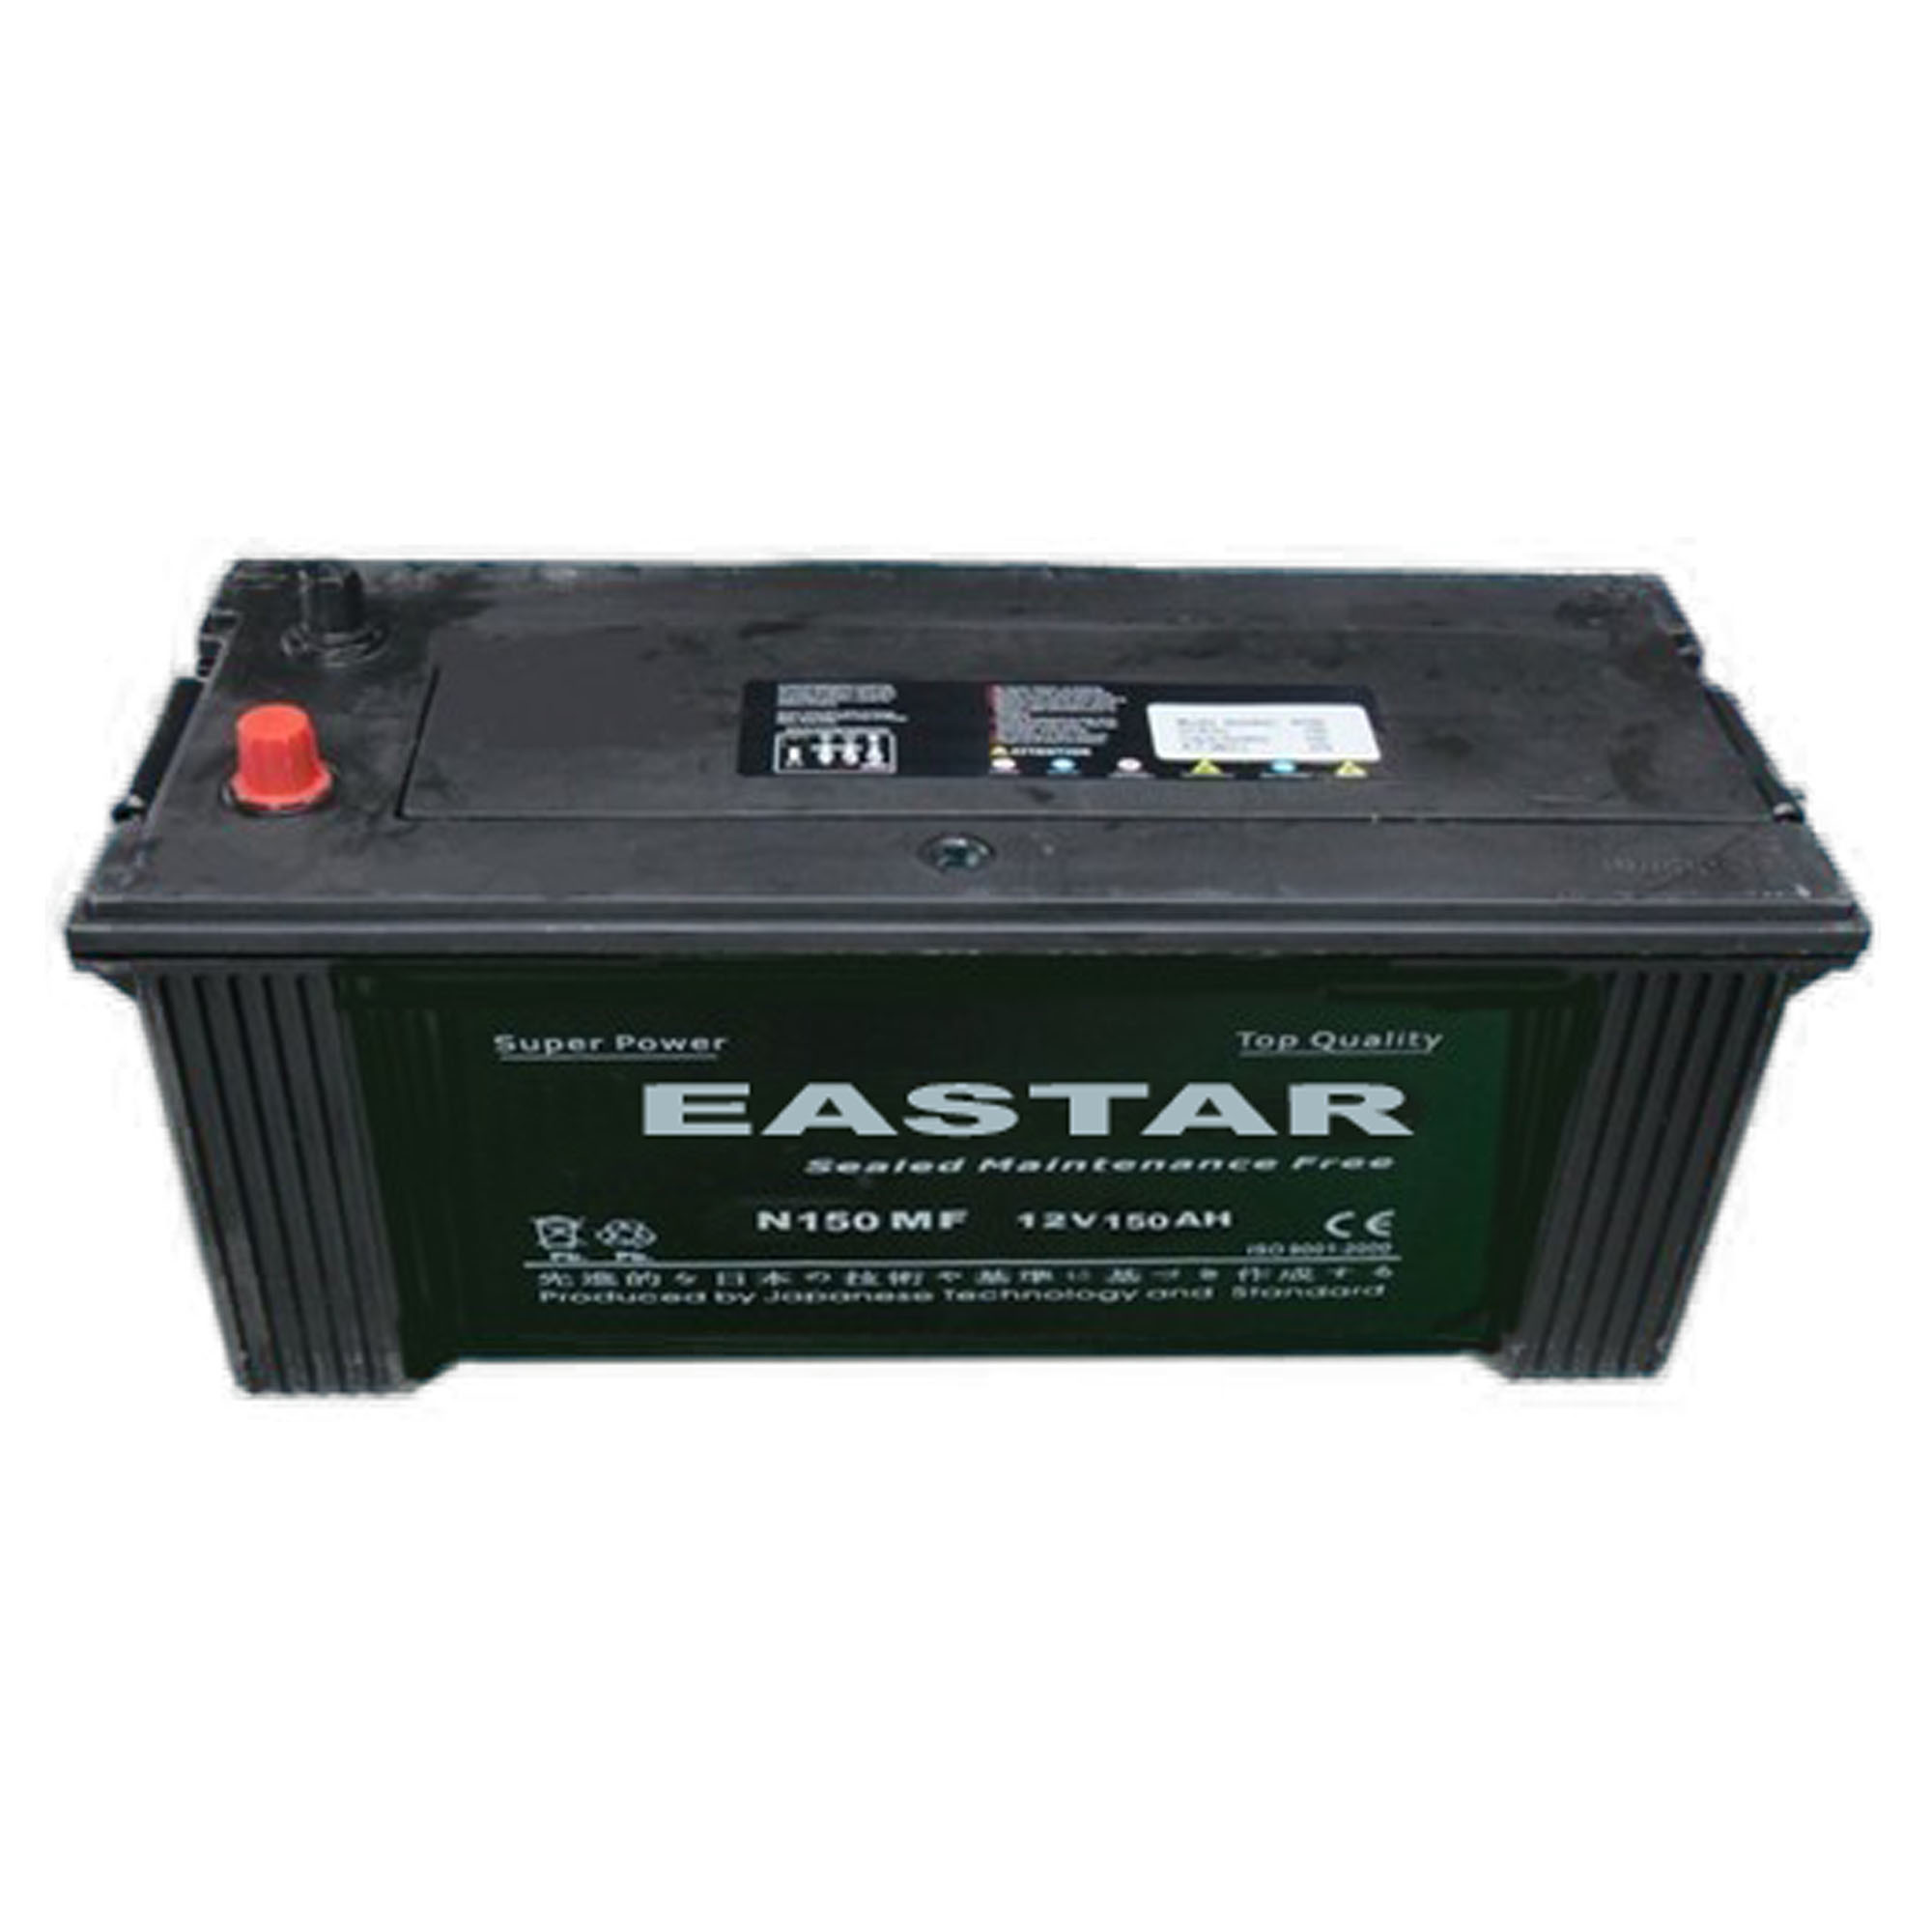 N200 12V 200ah Mf Auto Battery